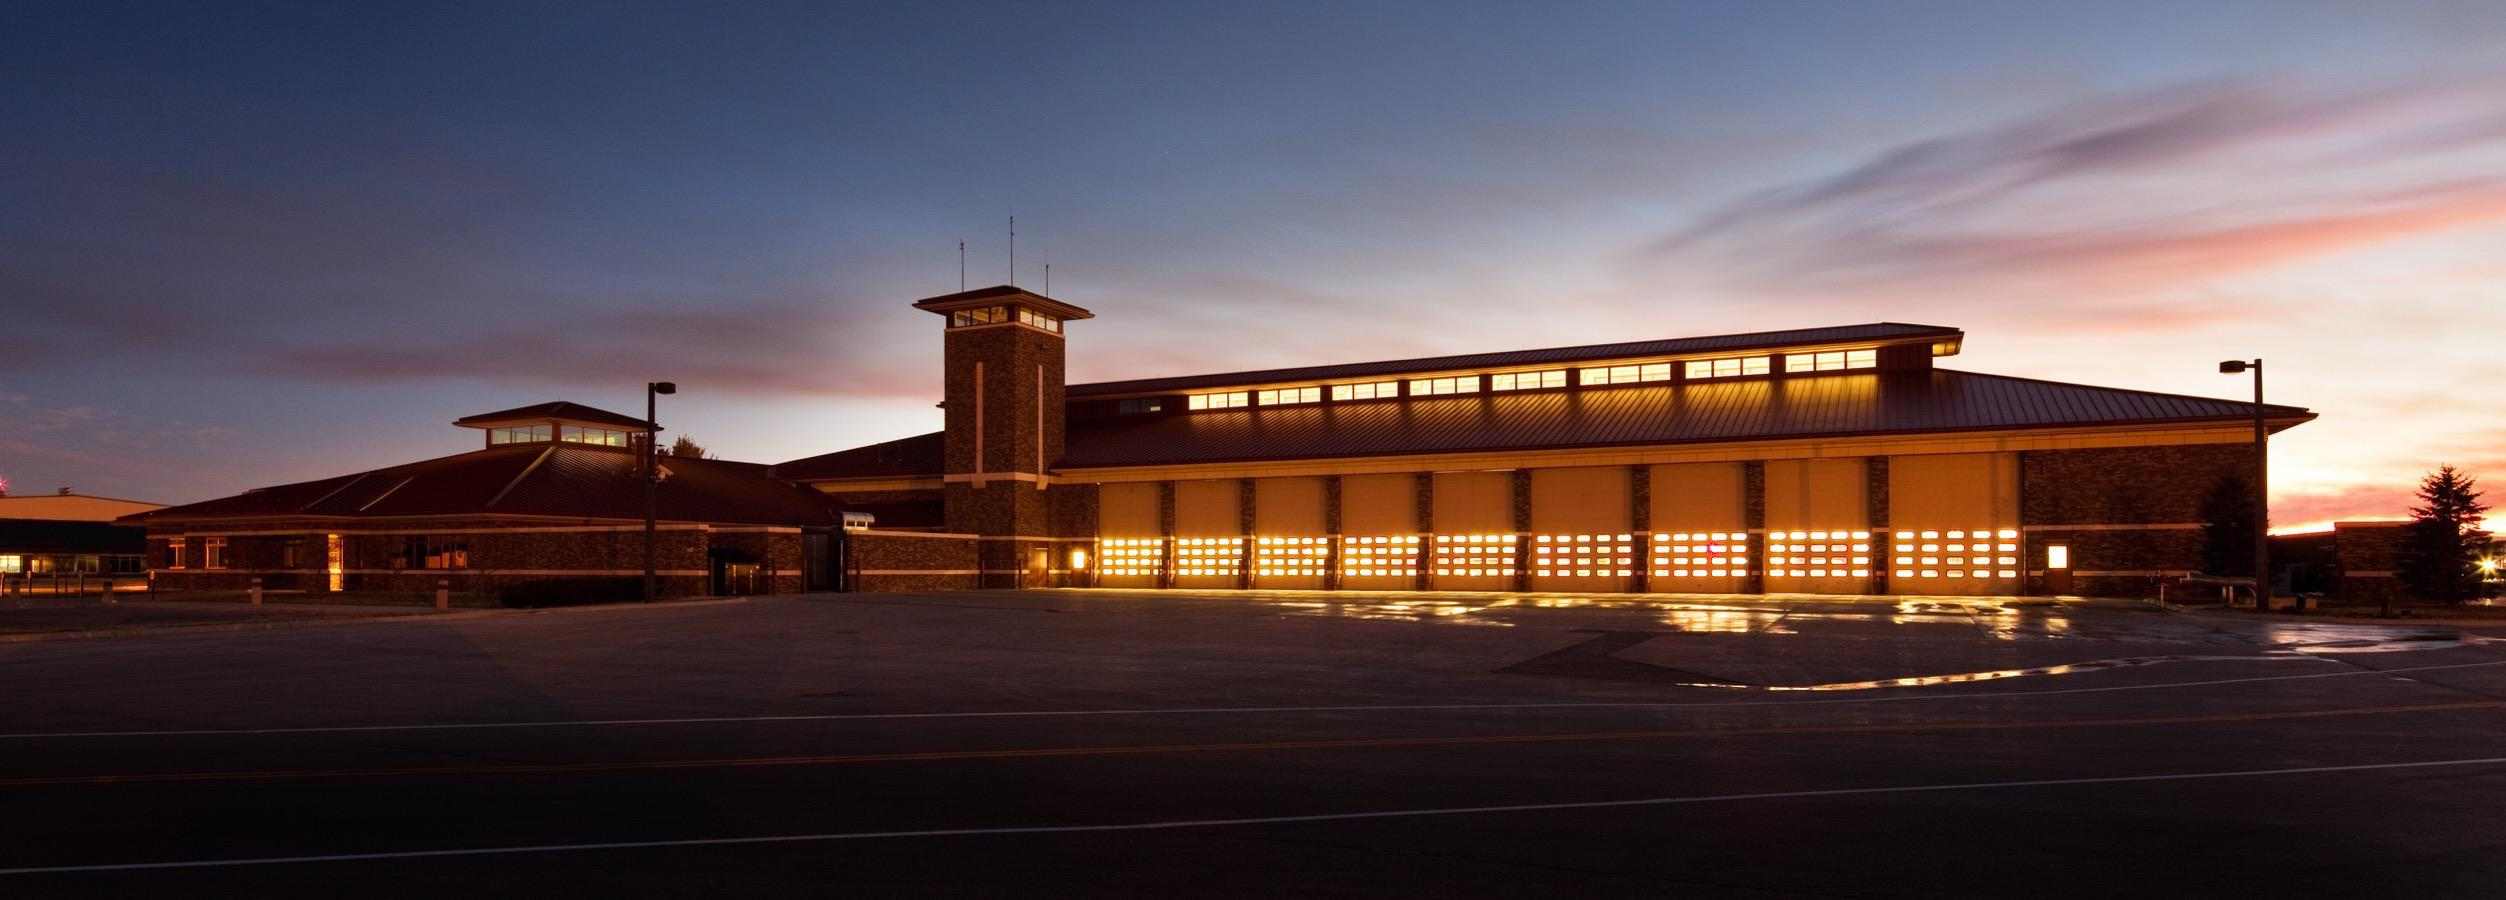 Fire & Rescue Department - Architecture Photography by Kevin Eilbeck